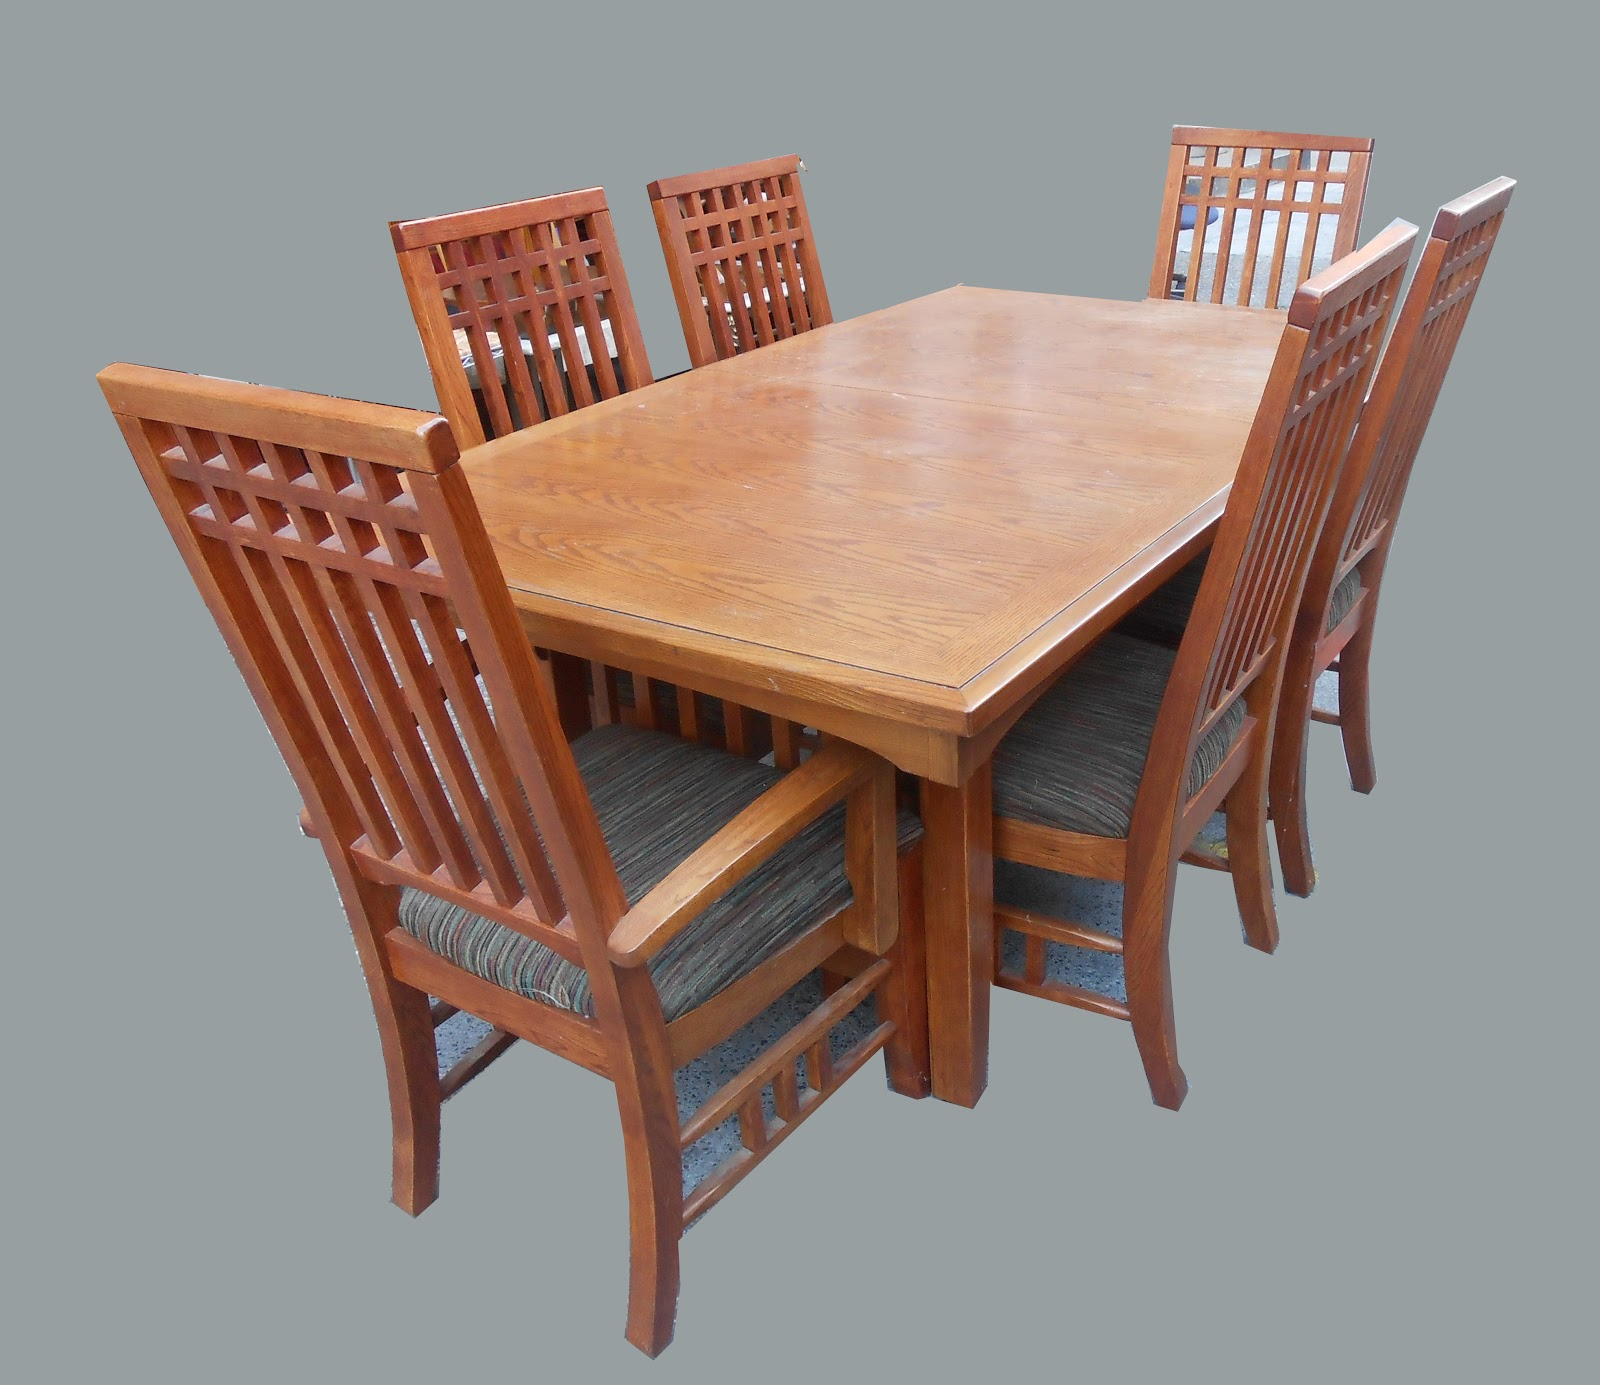 Mission Style Chairs Uhuru Furniture And Collectibles Mission Style Dining Table